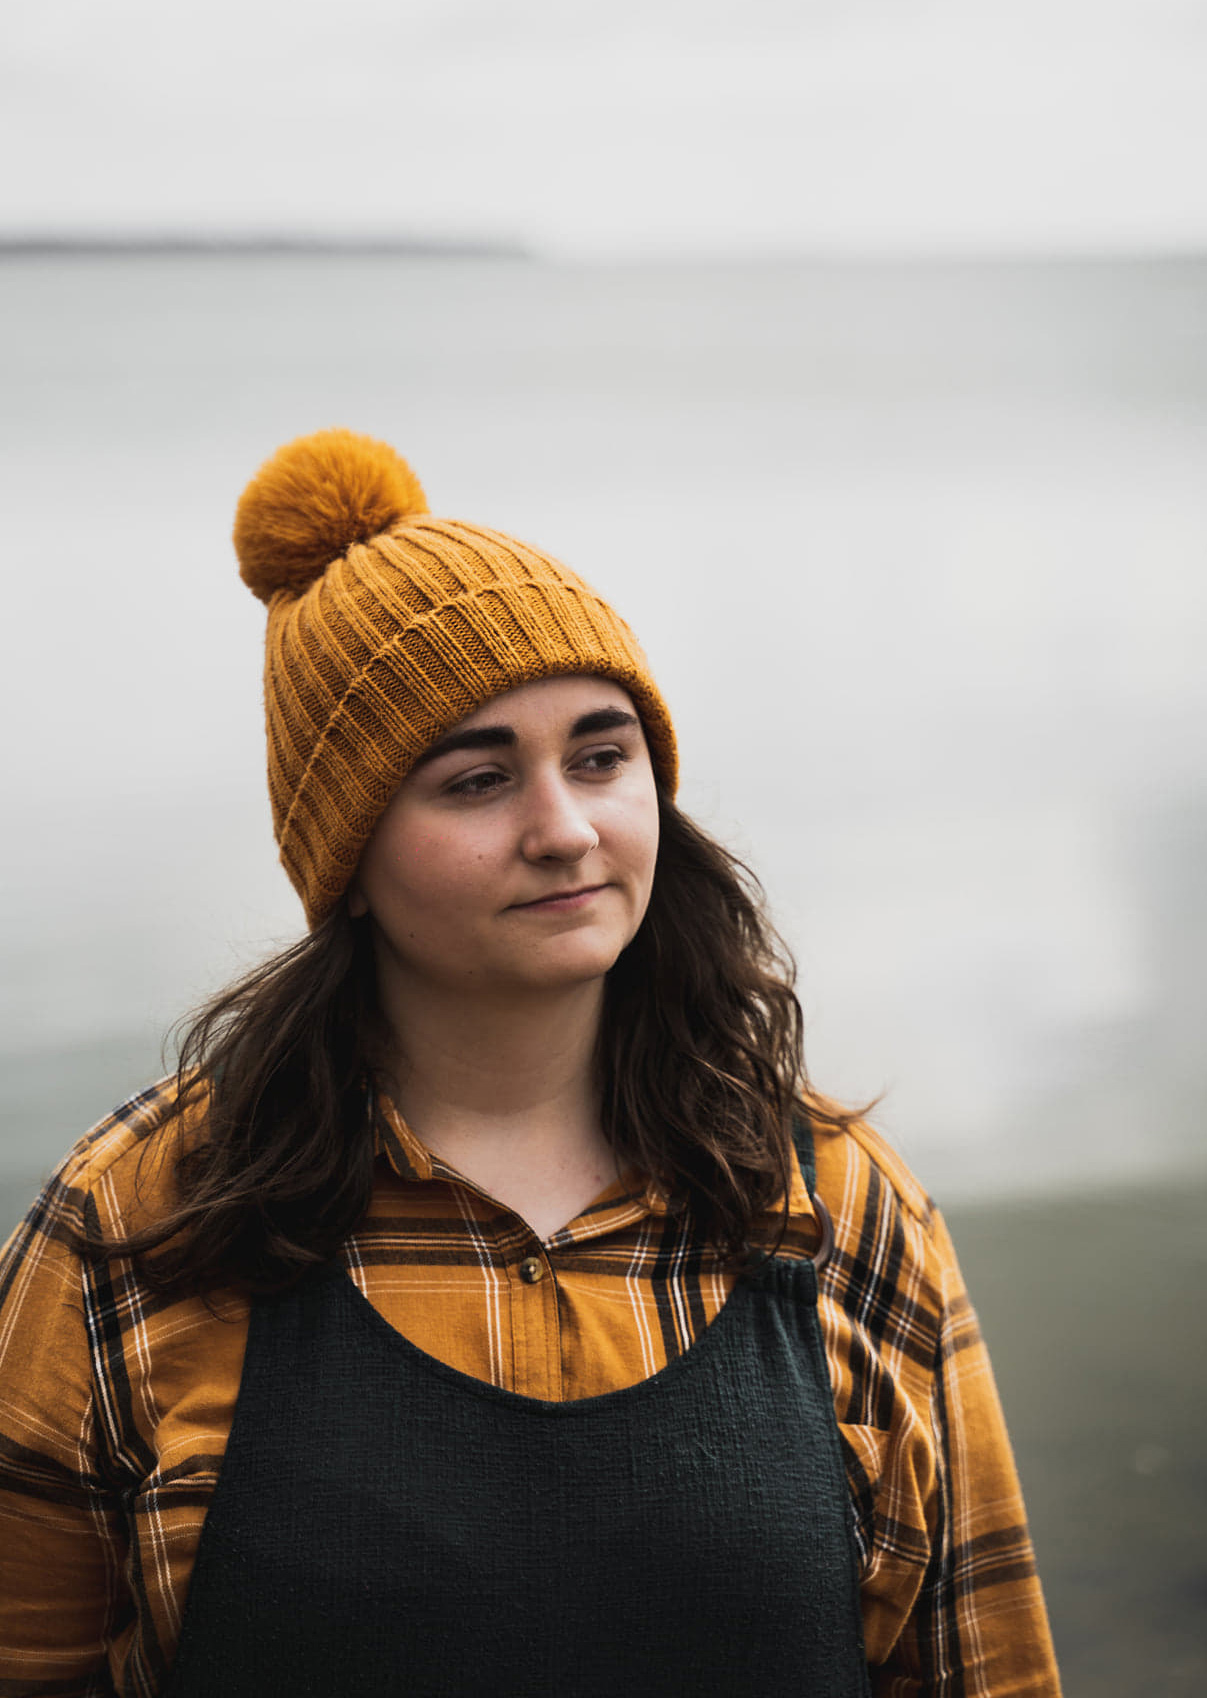 Rachel Grace (18) from Wexford has won the opportunity to perform at the prestigious Ruby Sessions in Dublin after being announced as the People's Choice winner in Four Star Pizza's nationwide Star Nation 2020 competition.